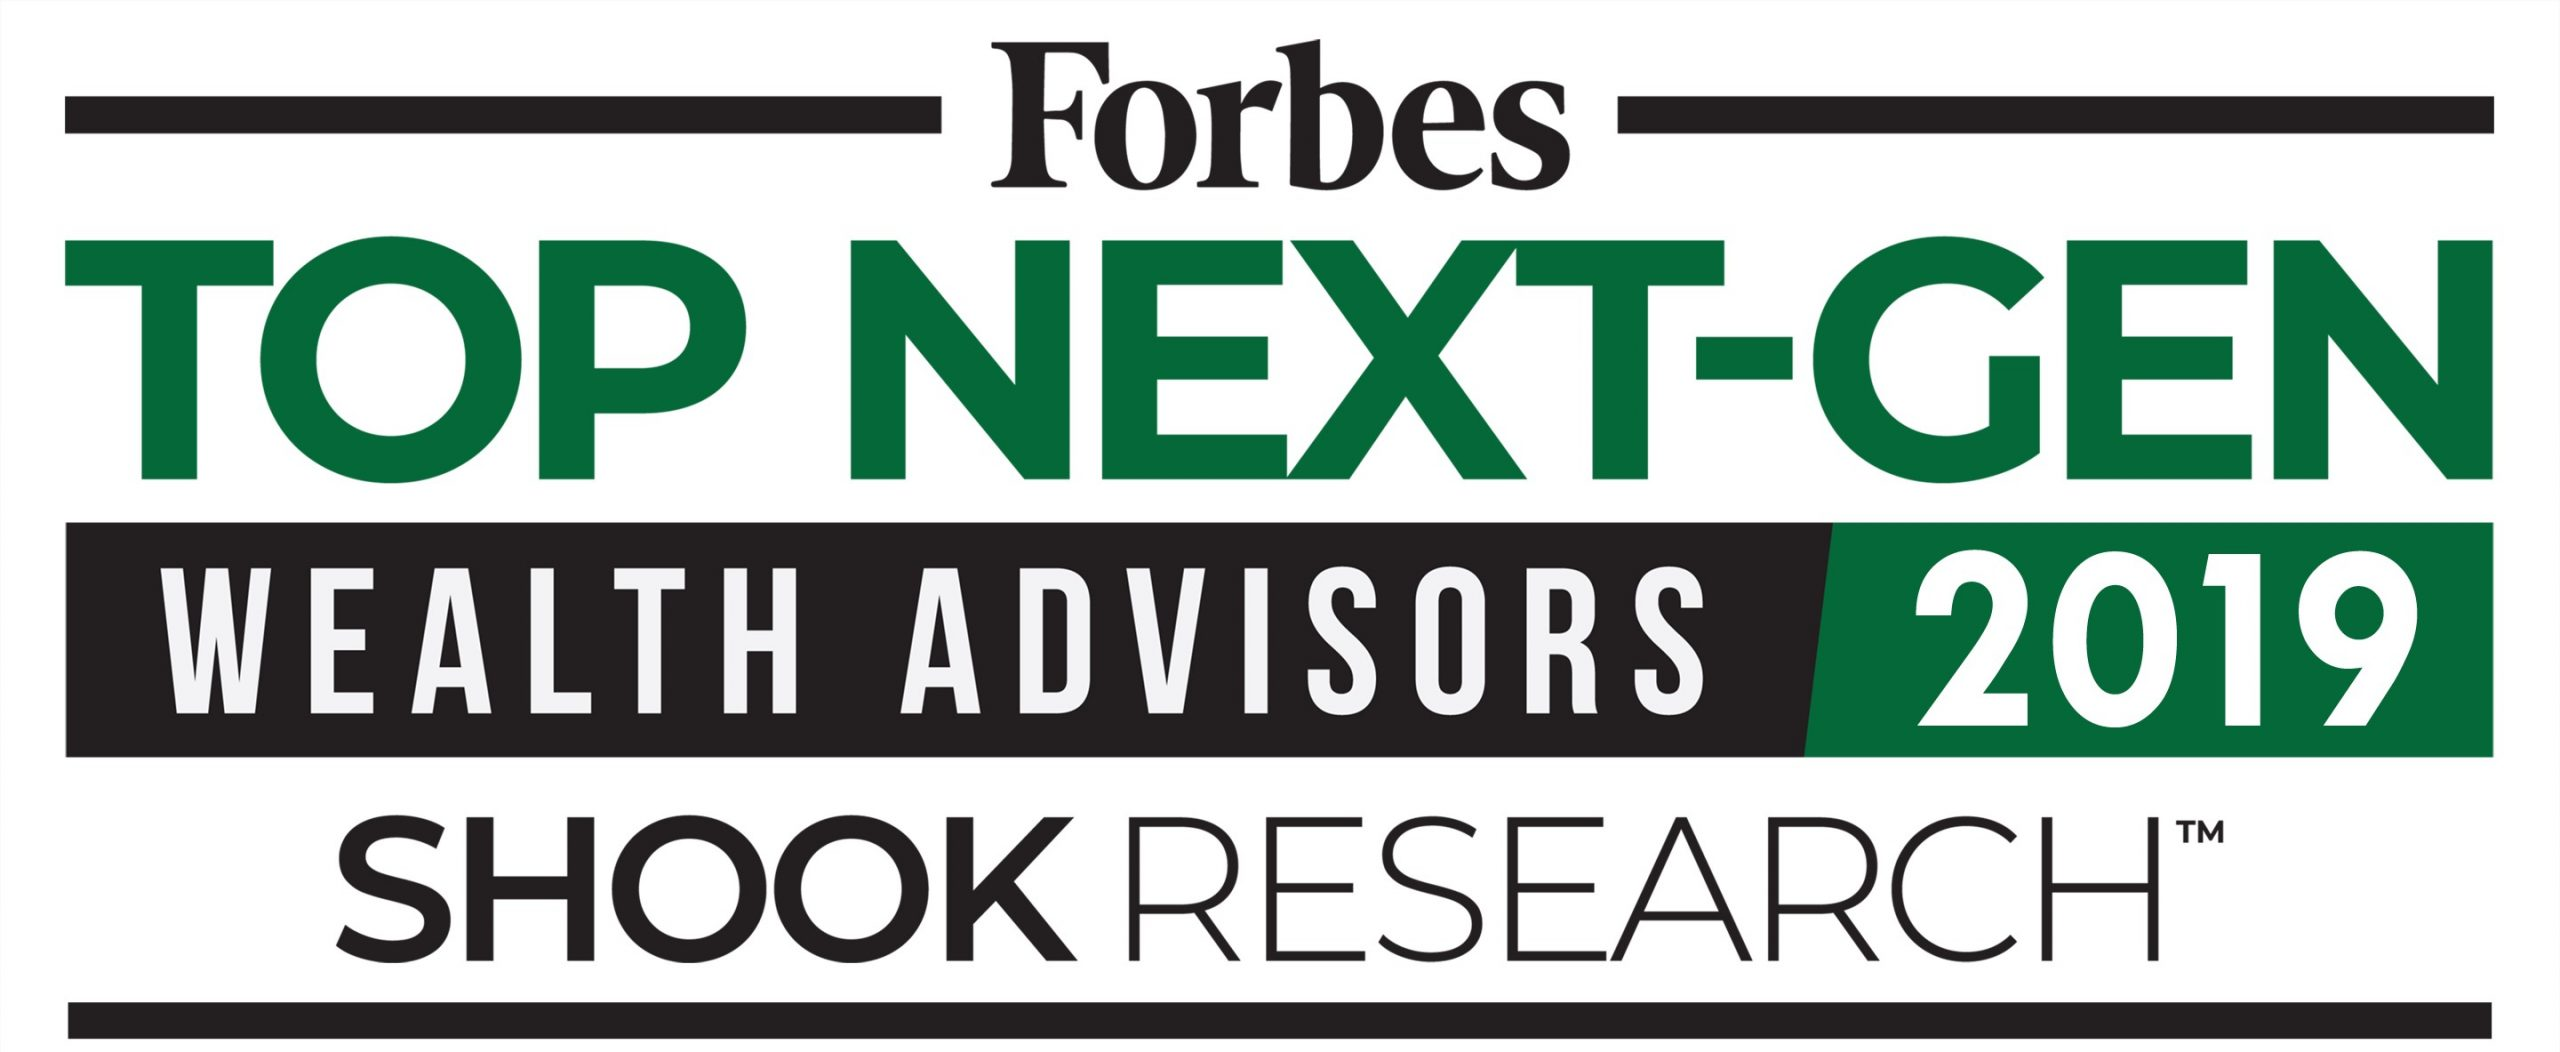 Top next-gen 2019 Forbes award